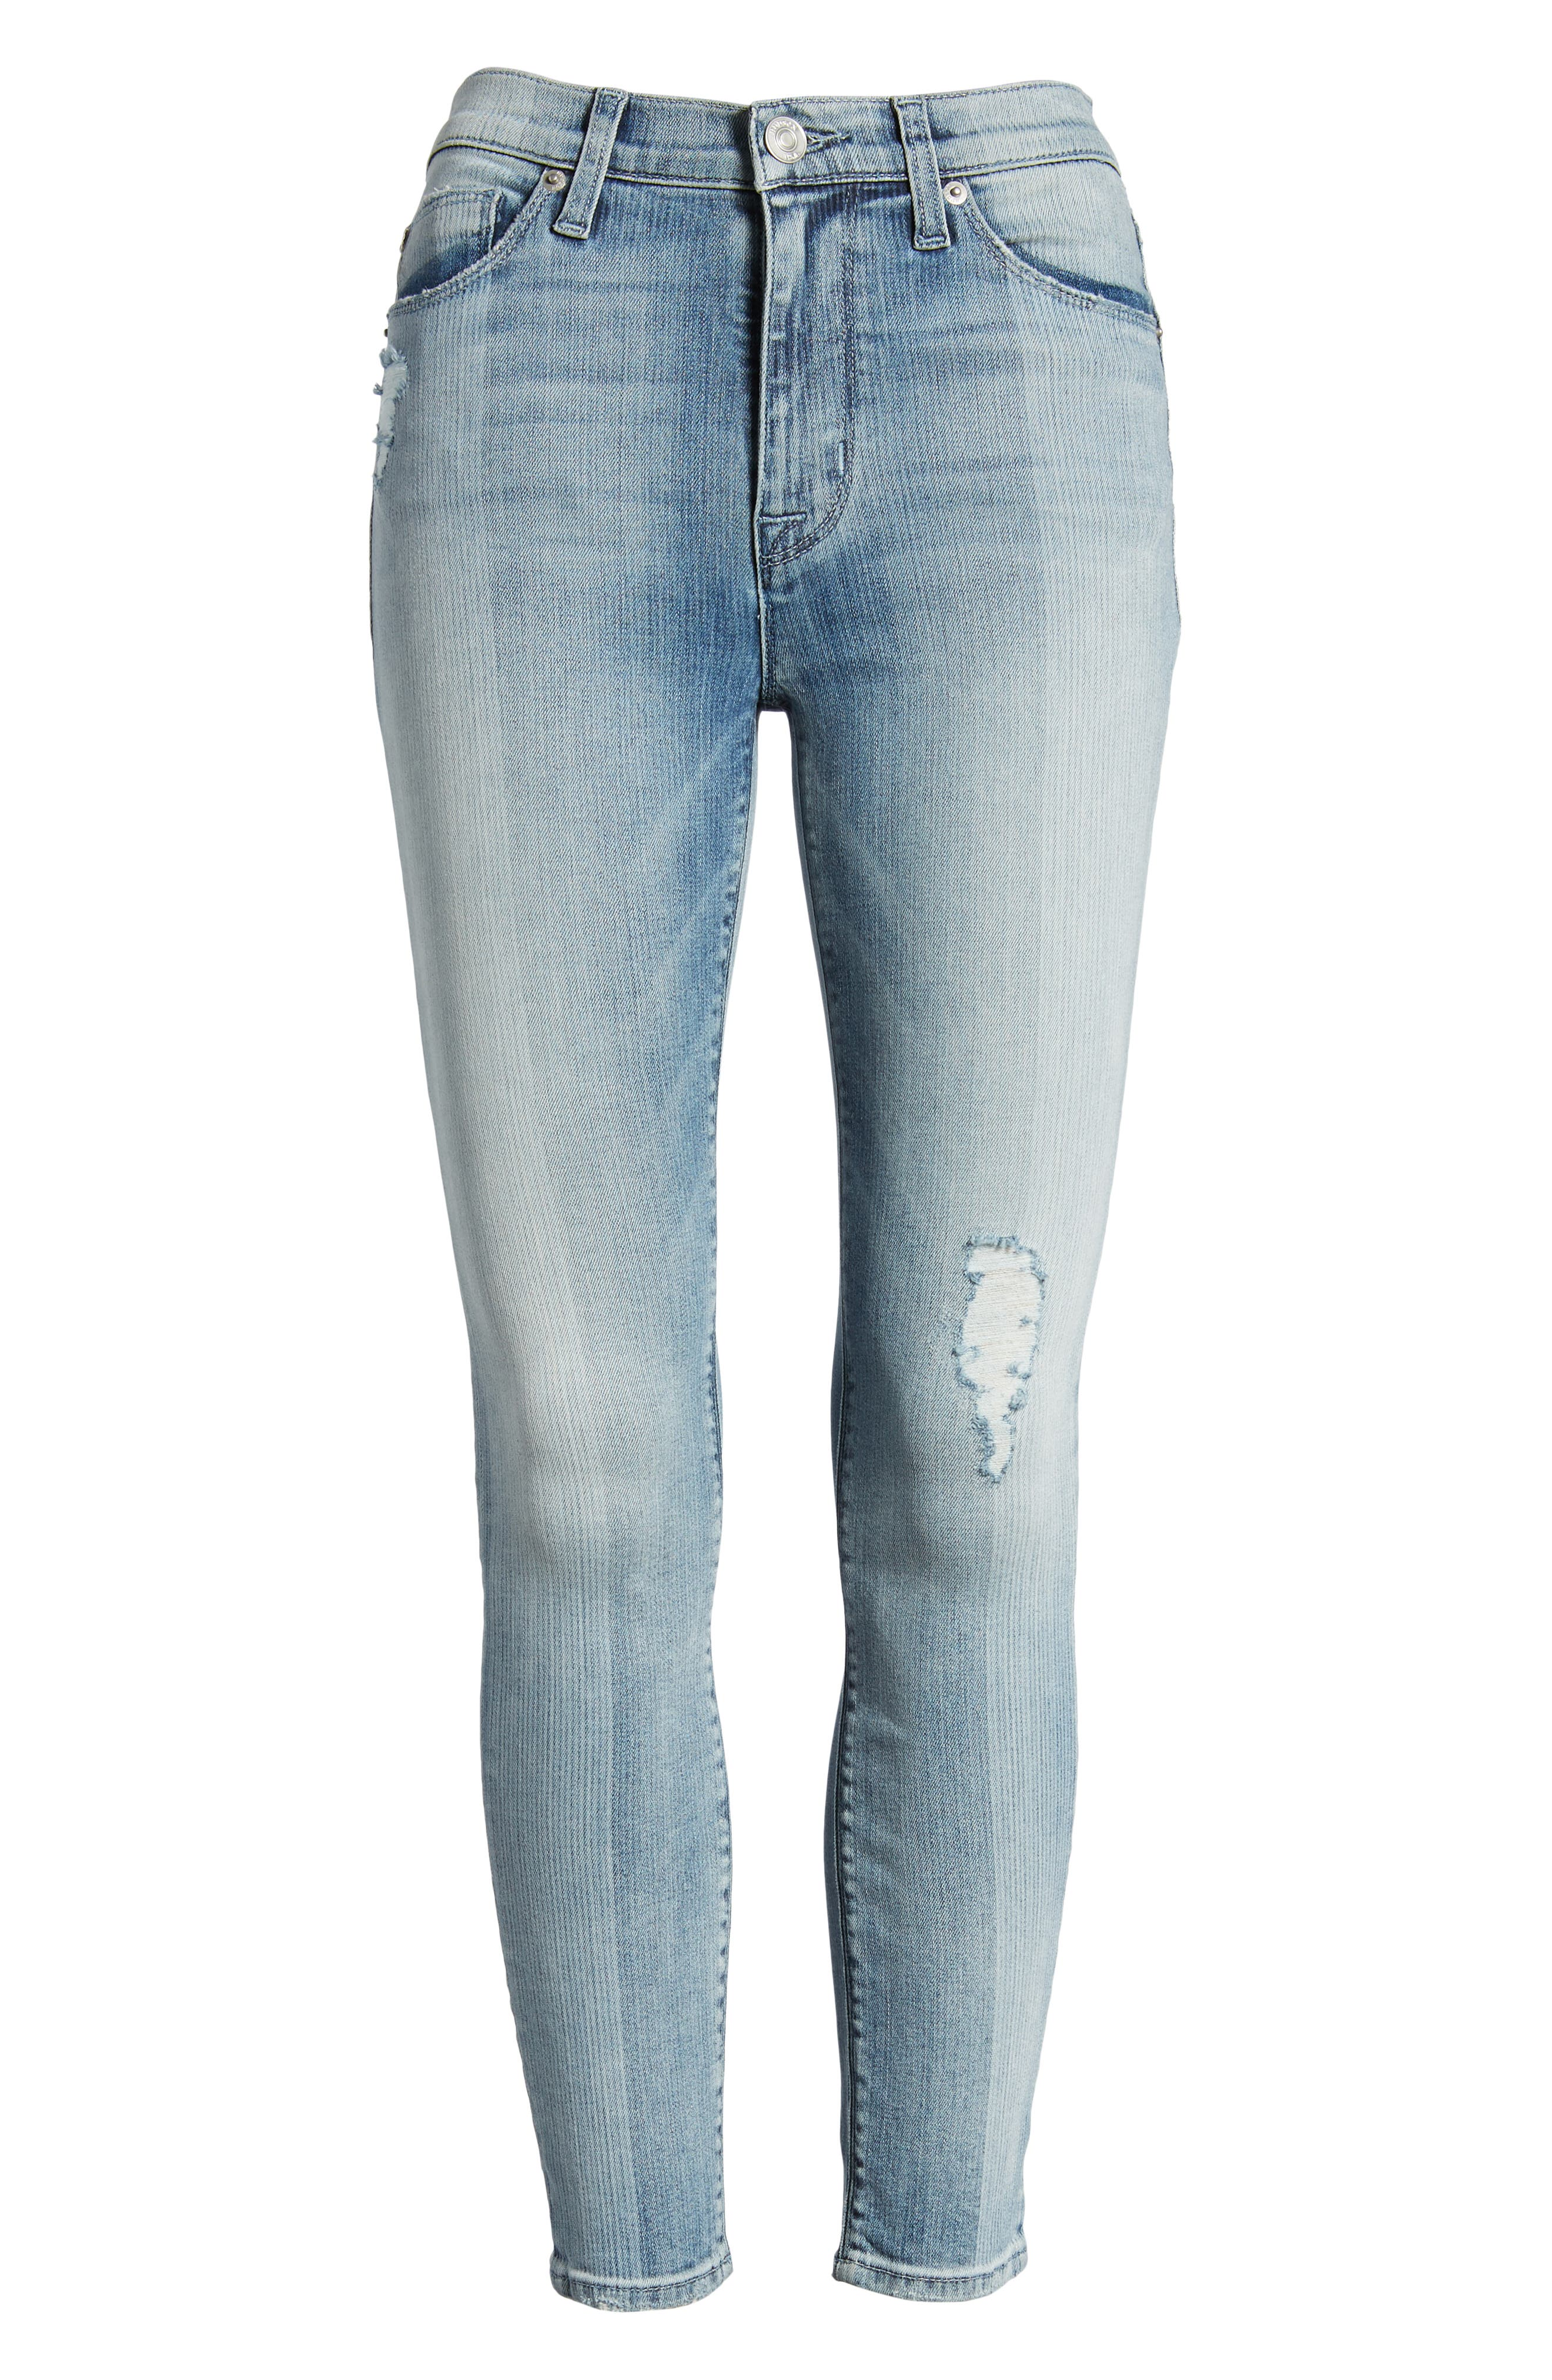 Barbara High Waist Crop Skinny Jeans,                             Alternate thumbnail 7, color,                             Purest Expression